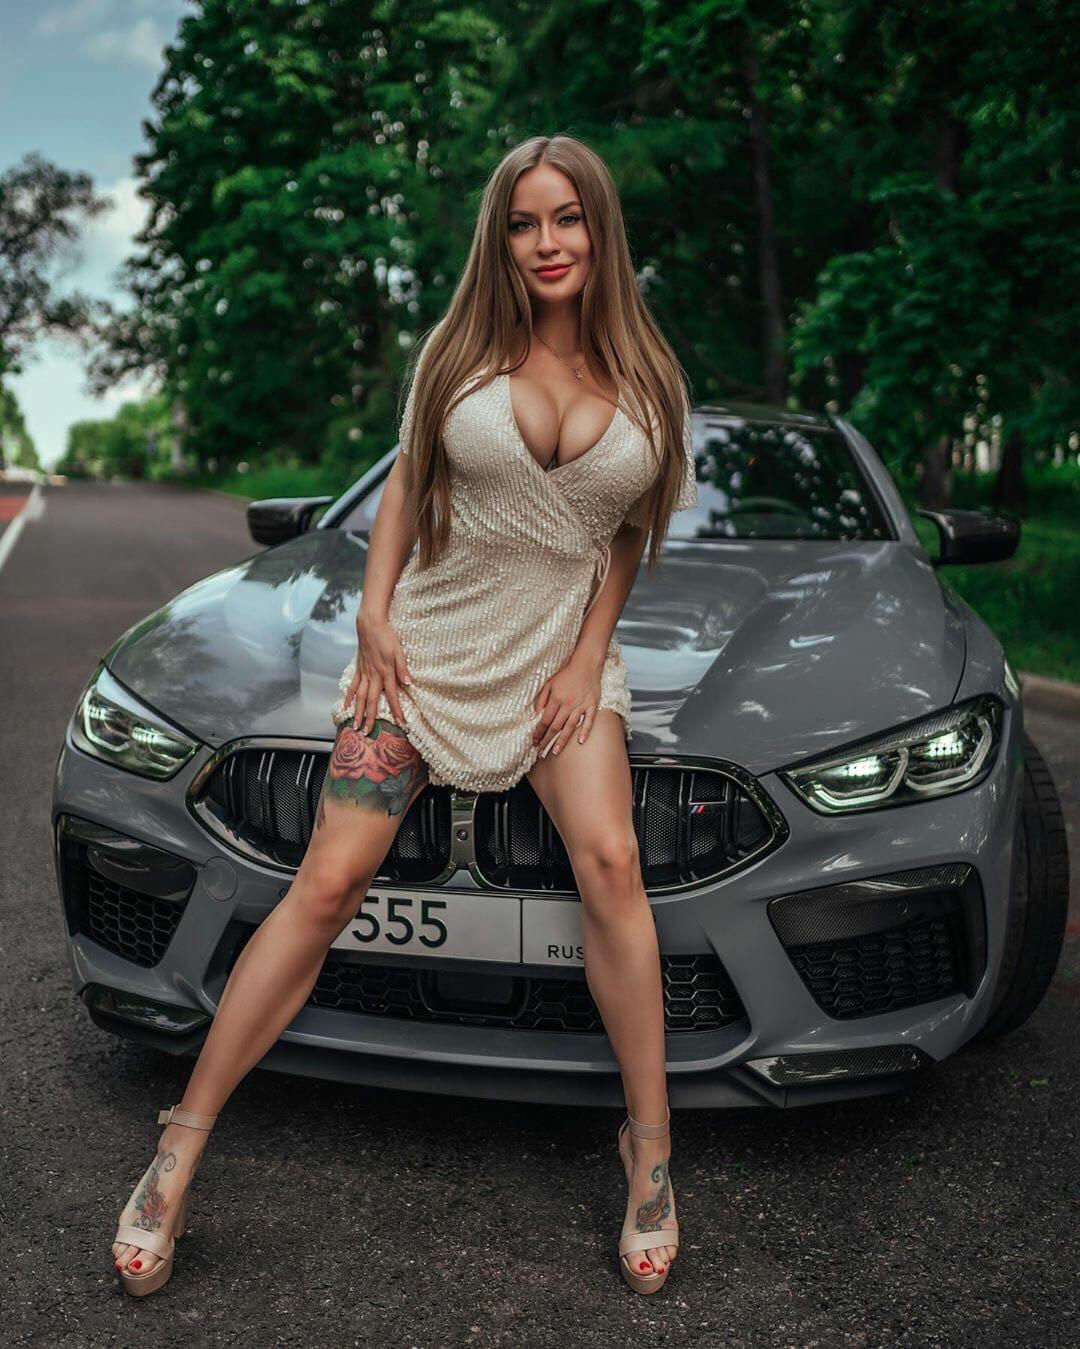 Picture with tags: HD, Dating, Interesting, Cars, Girl